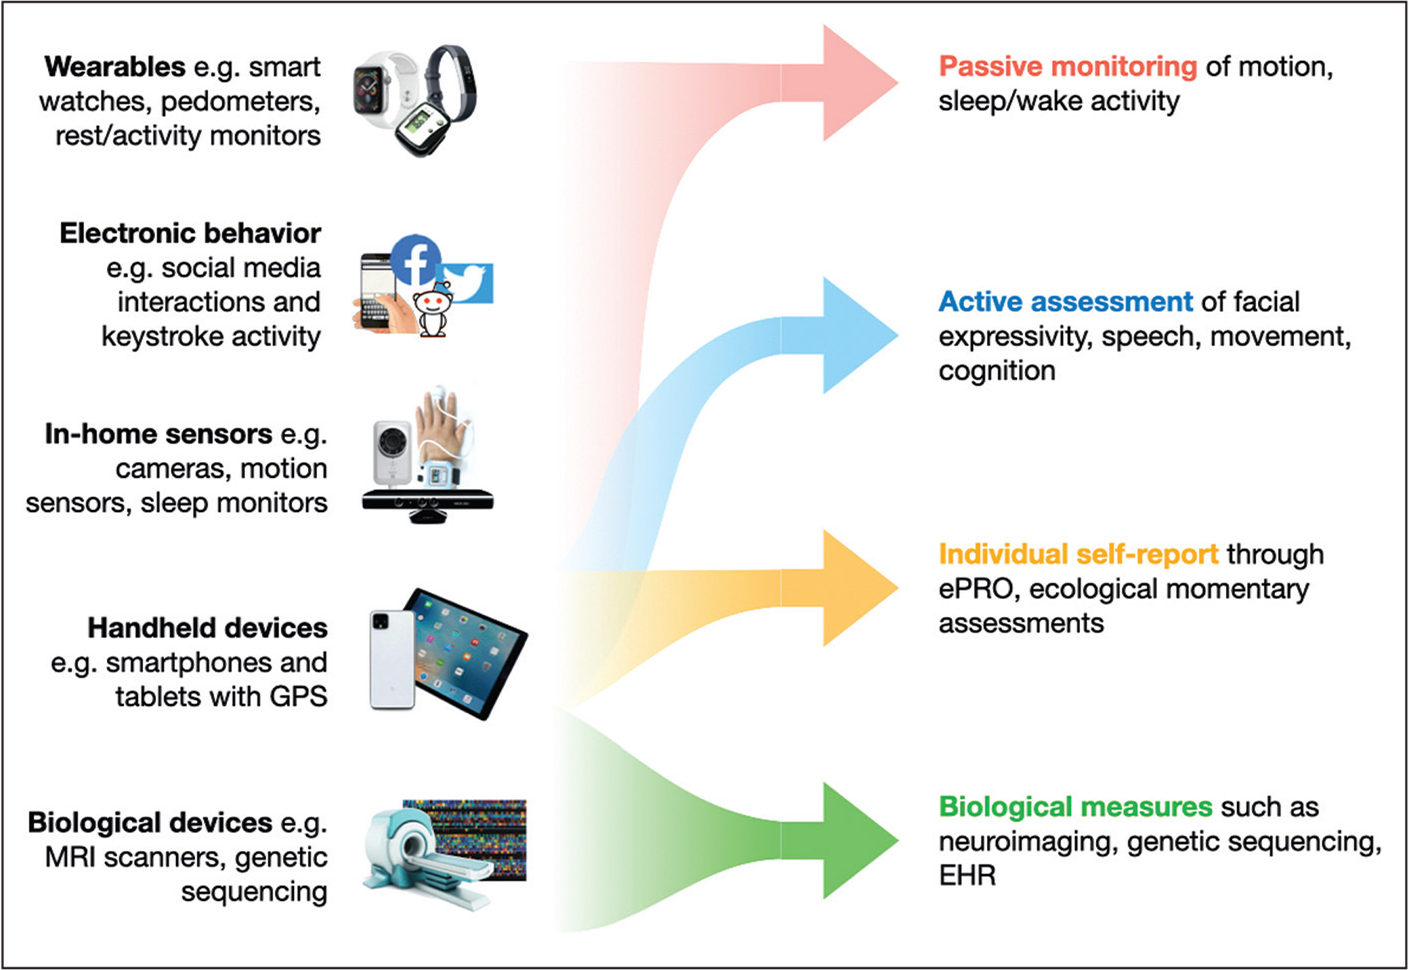 Different types of data collection strategies for digital measurement tools. Although some devices and measurement tools fall exclusively into one category (eg, magnetic resonance scanners are exclusively meant for in-clinic biological measurements), other tools, depending on how their technology is used, can provide multiple types of measures (eg, smartphones can be used for passive behavioral monitoring and also used for active behavioral assessments). EHR, electronic health record; ePRO, eletronic patient-reported outcome; GPS, global positioning system; MRI, magnetic resonance imaging.